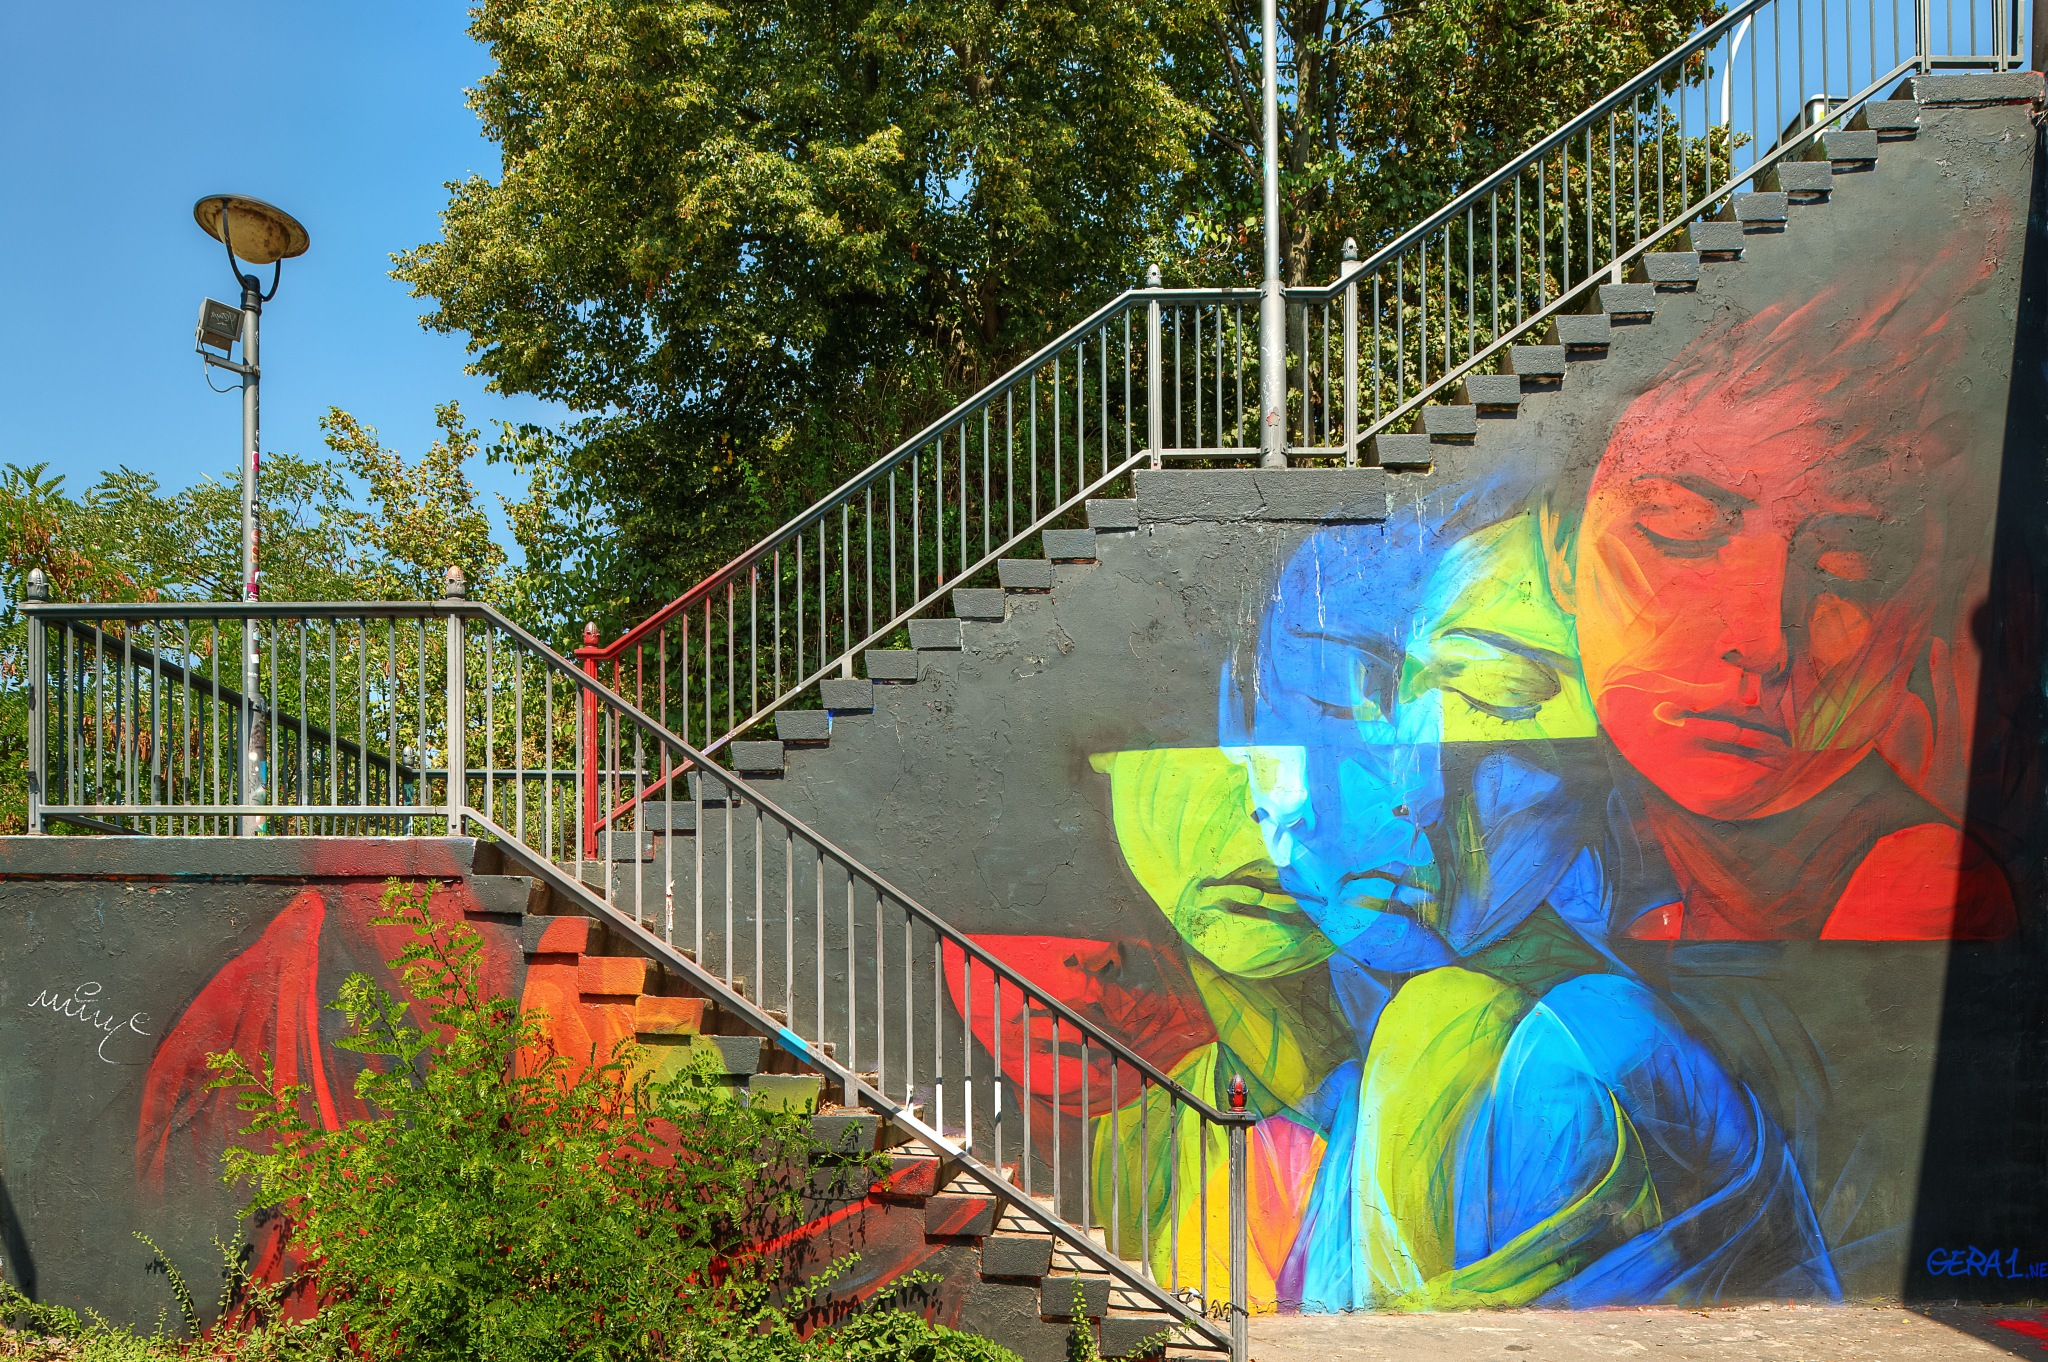 Stairs by Hartmut Ustorf